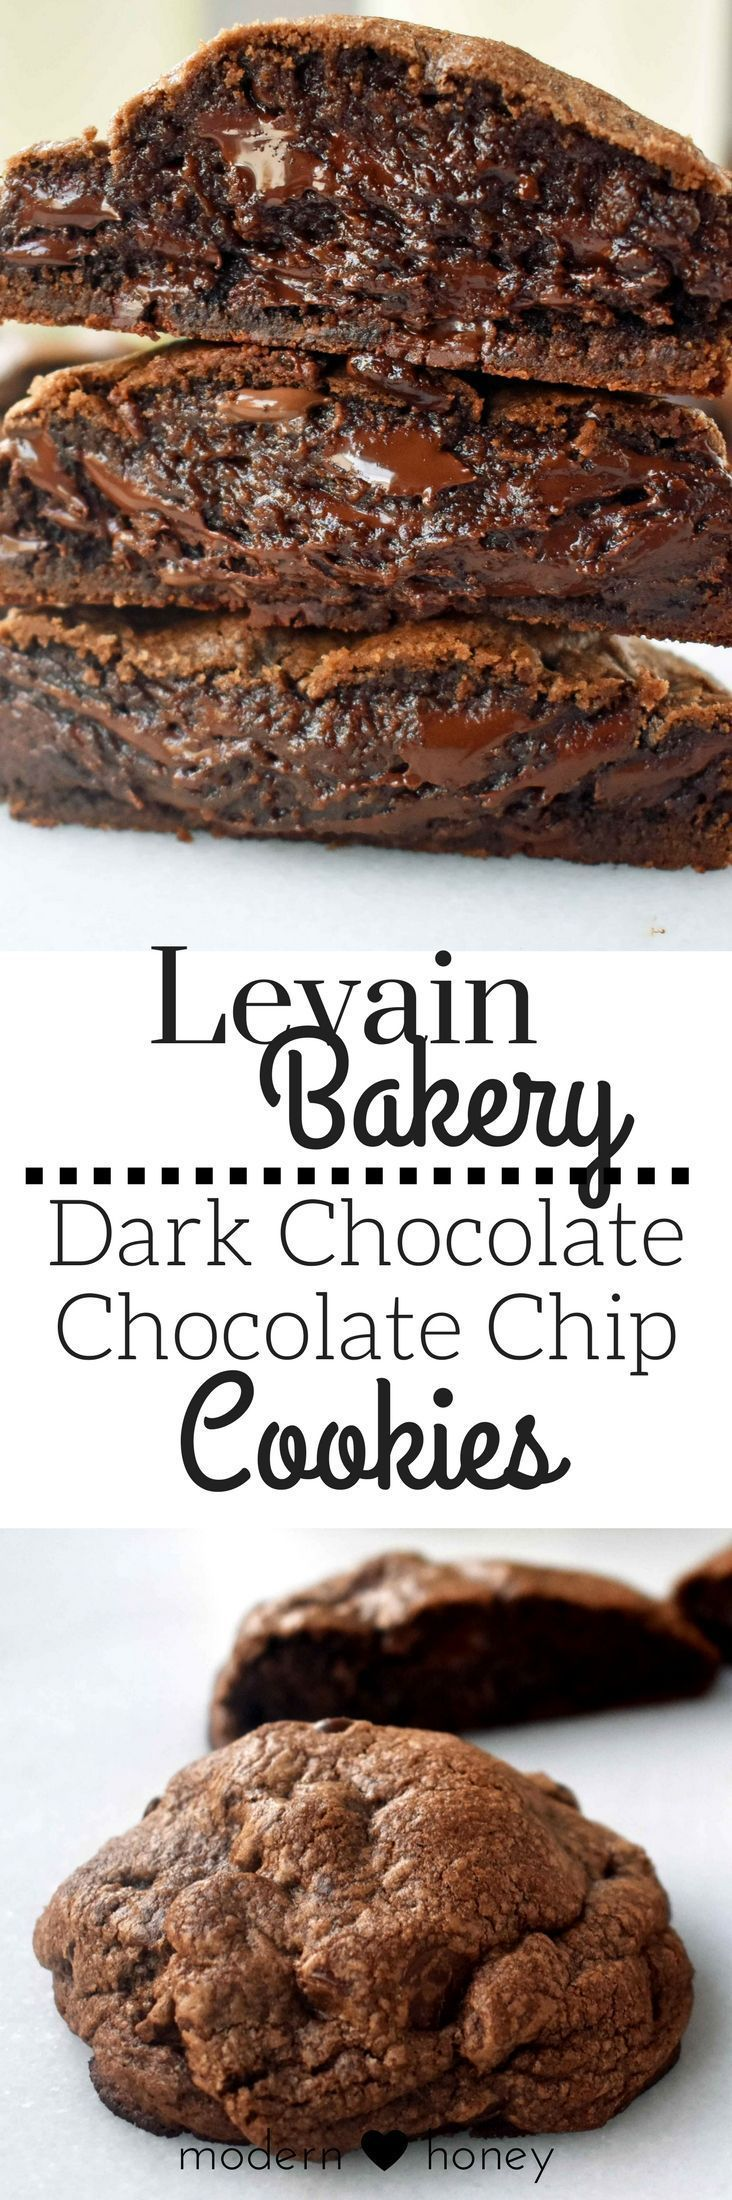 Levain Bakery Dark Chocolate Chocolate Chip Cookies are the ultimate copycat Levain Bakery cookie recipe. 5 Star Rating for a reason.